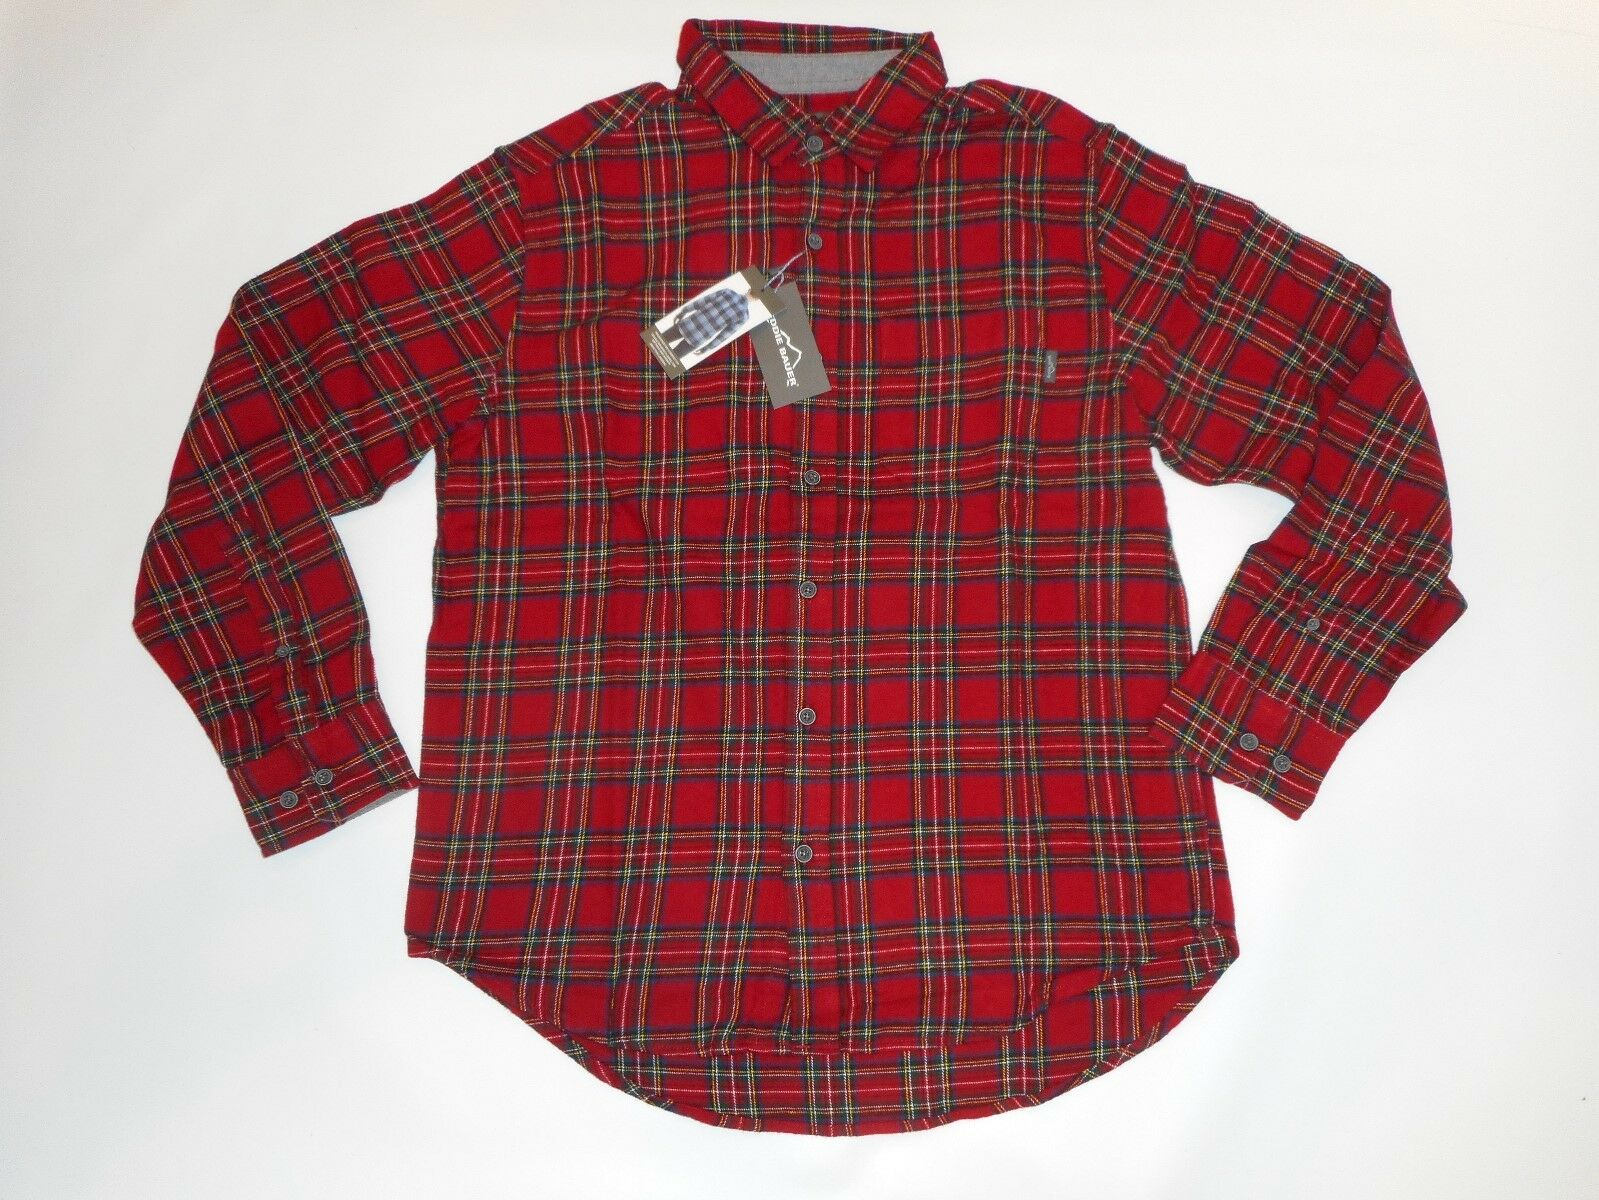 735e26216 EDDIE BAUER Long Sleeve Red Northpole Plaid BRISTOL Flannel SHIRT Mens  LARGE NEW